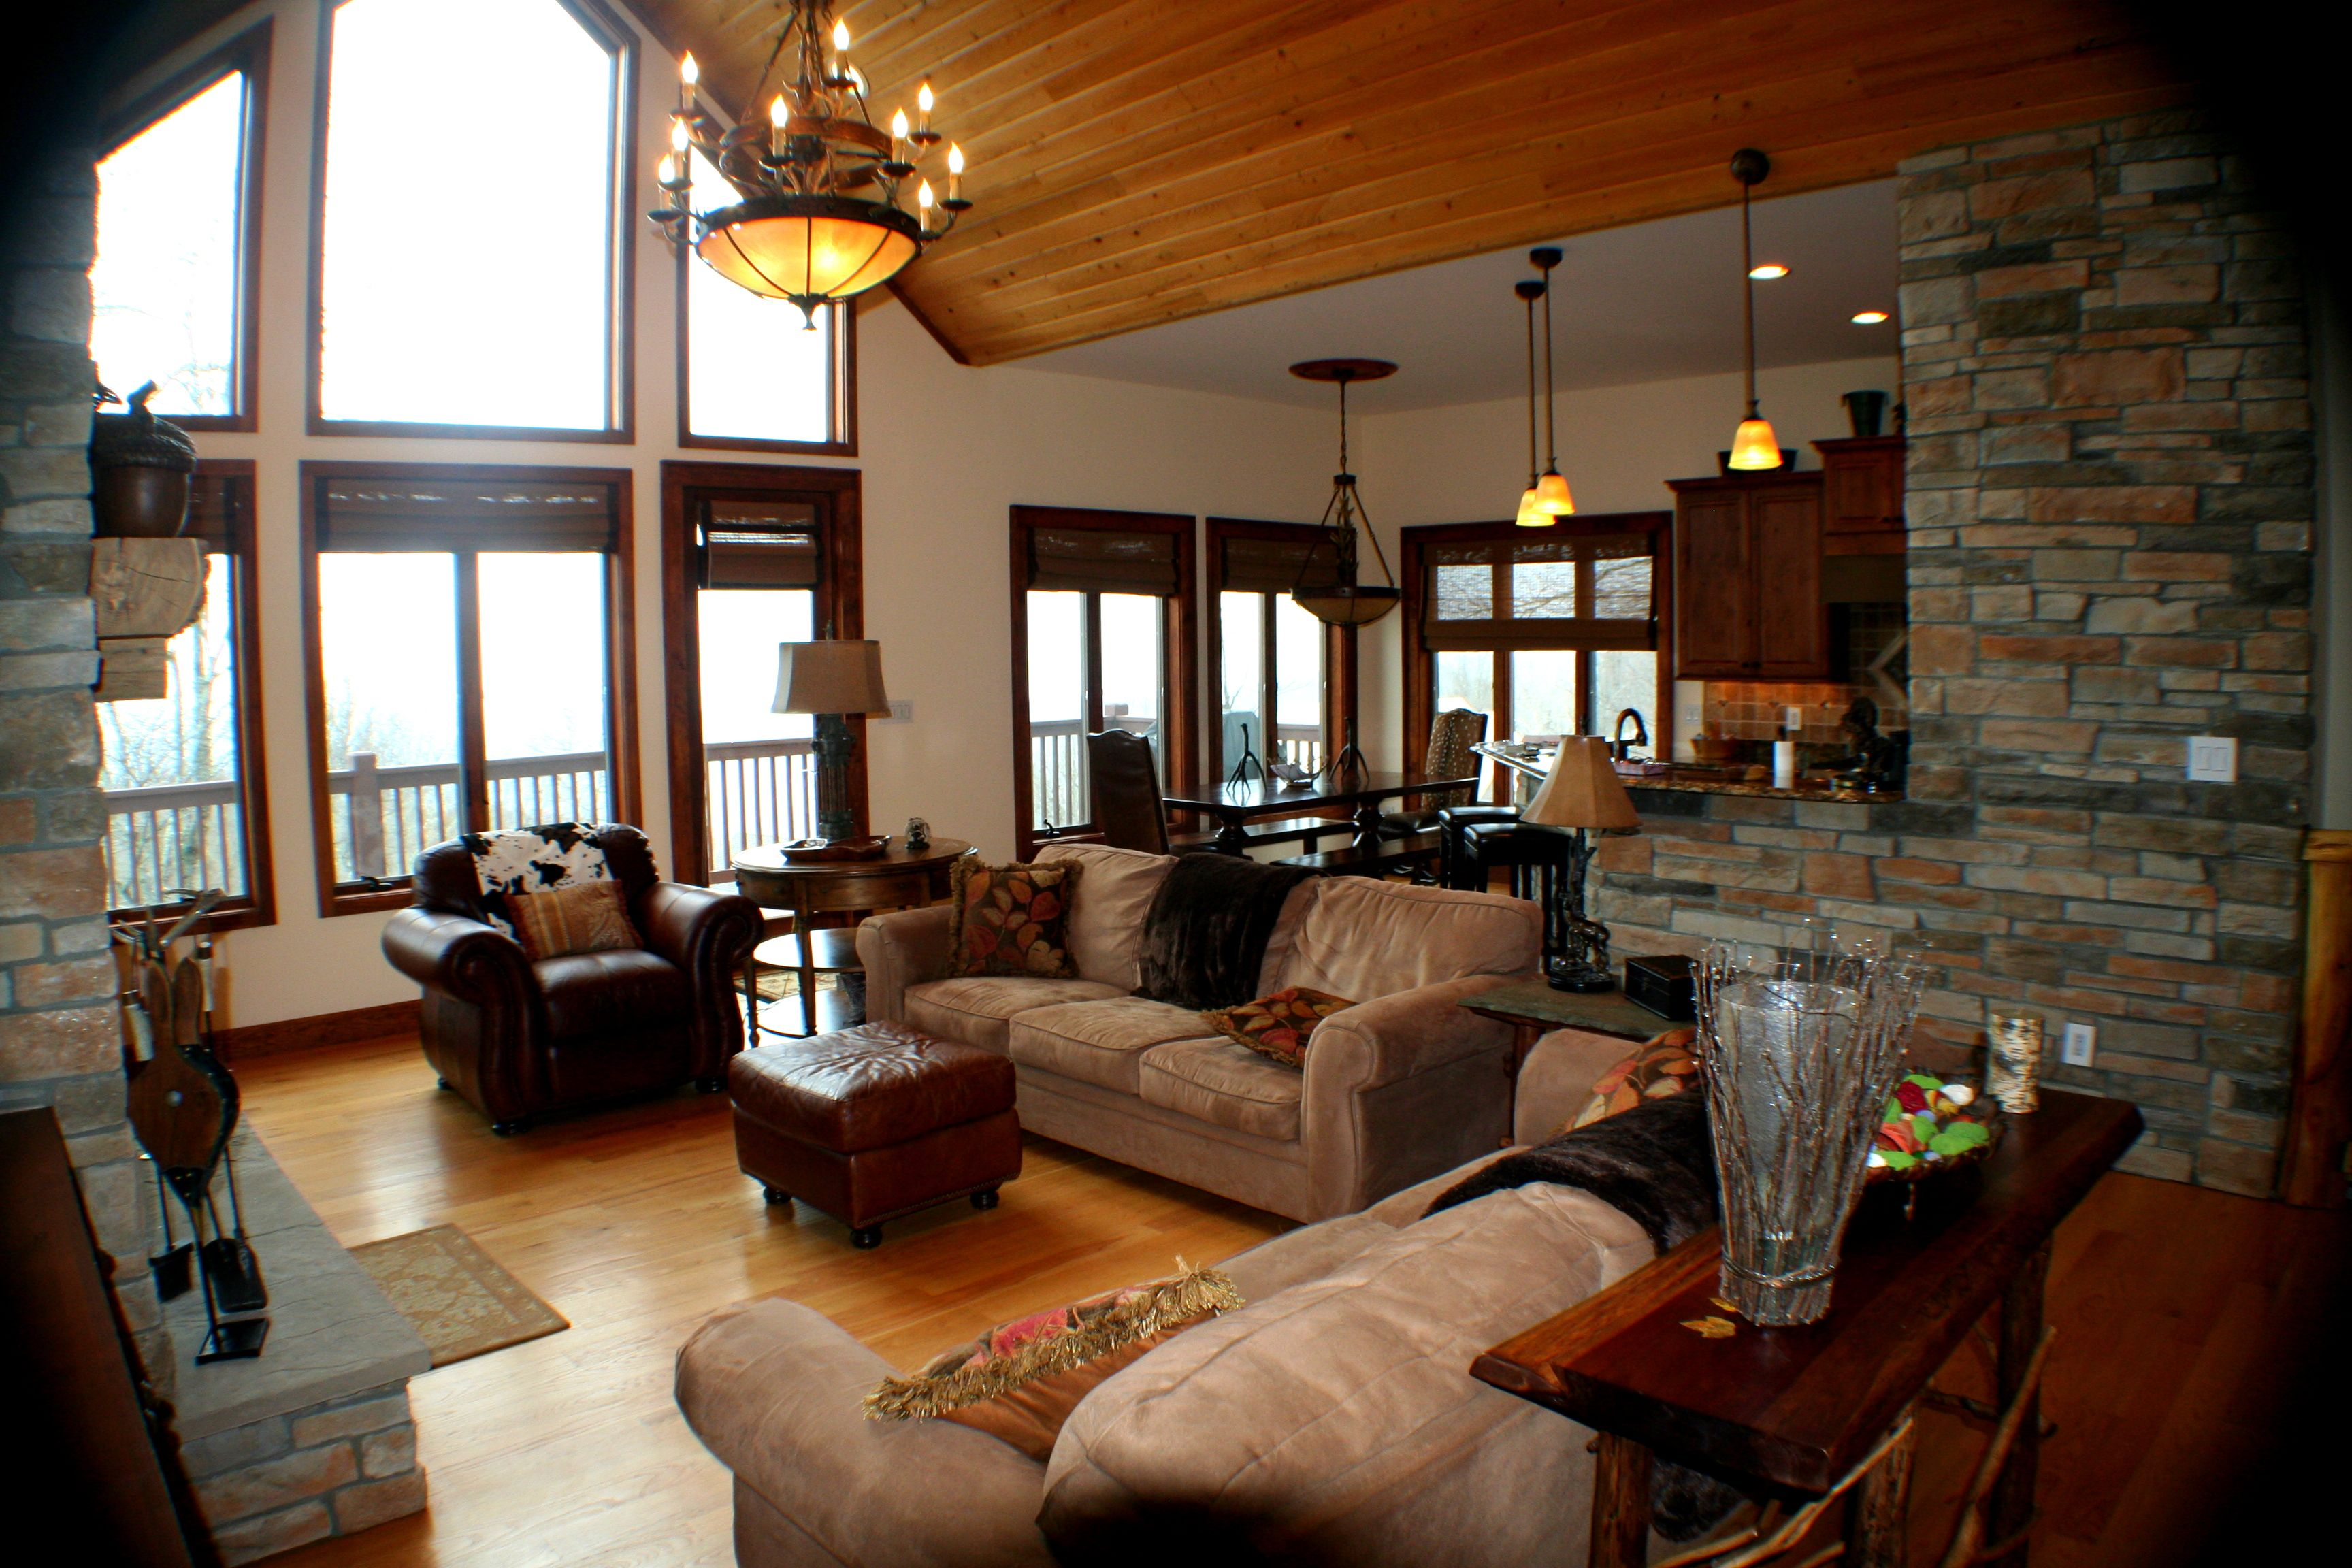 mountain nc sugar vacation to cabin interior in info onlinechange cabins friendly boone rental rentals pet rent